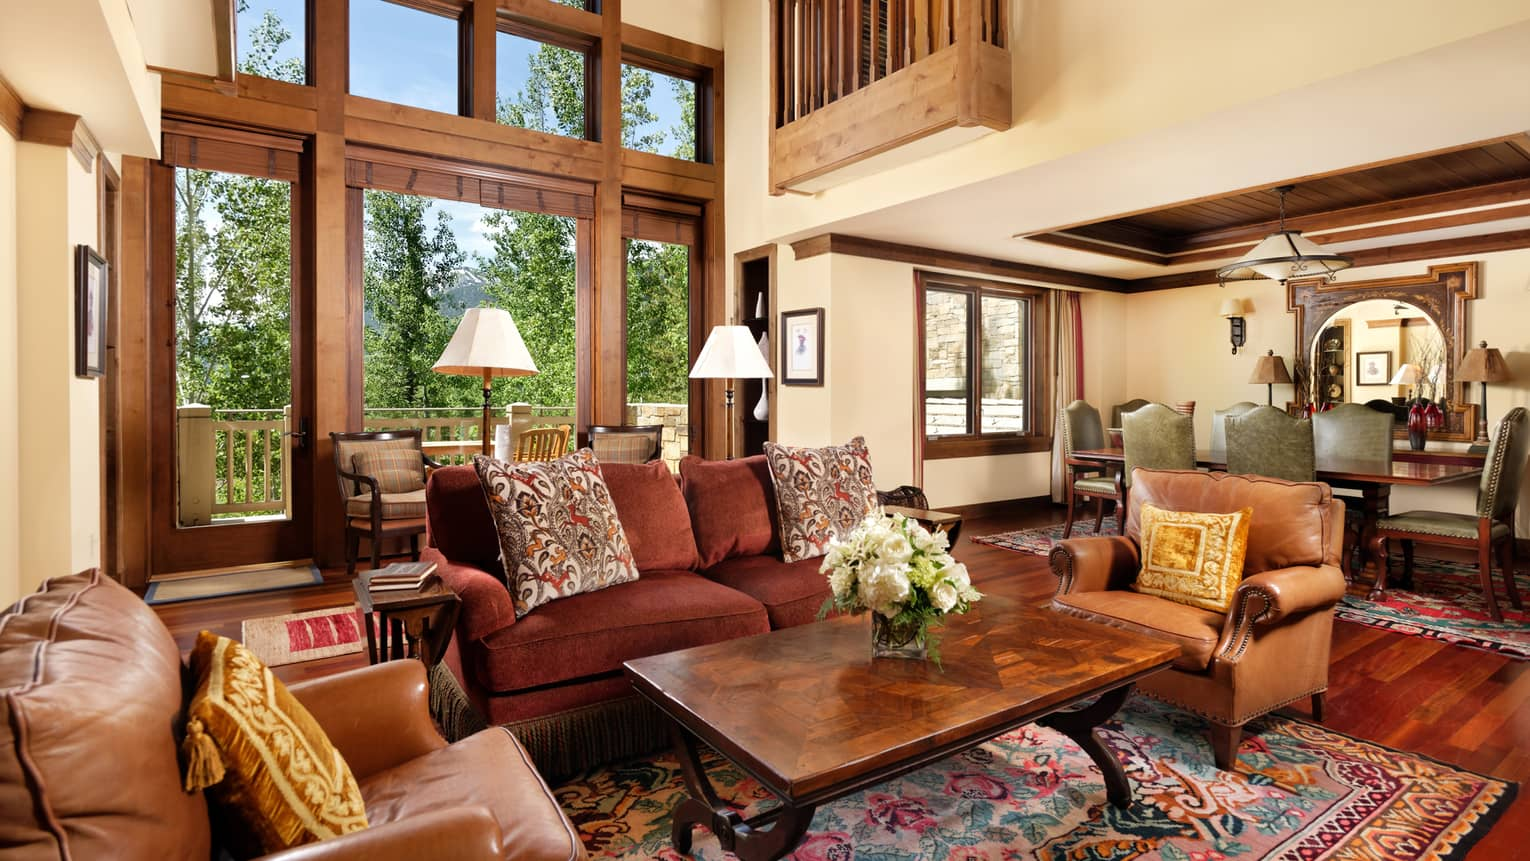 Plush sofa, brown leather armchairs under tall loft-like ceiling, windows